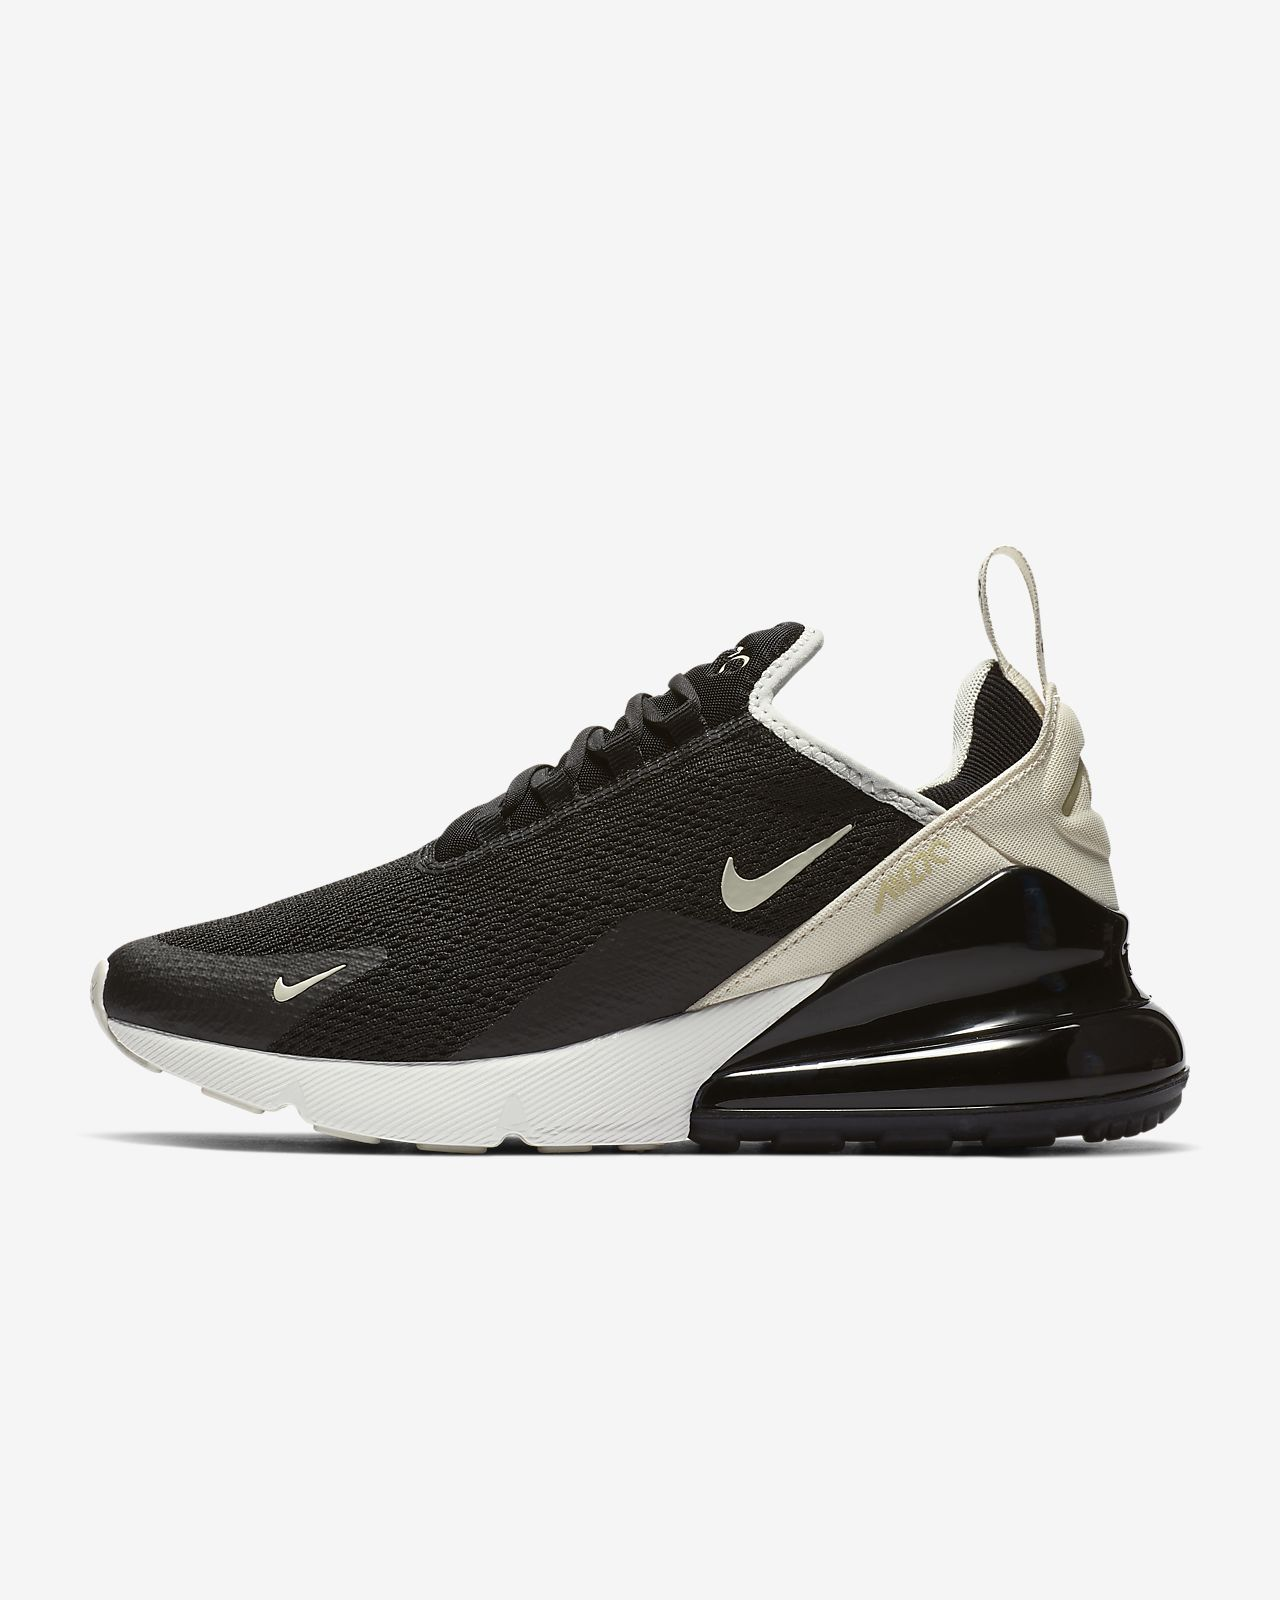 a3473ca418074 Nike Air Max 270 Women s Shoe. Nike.com AU